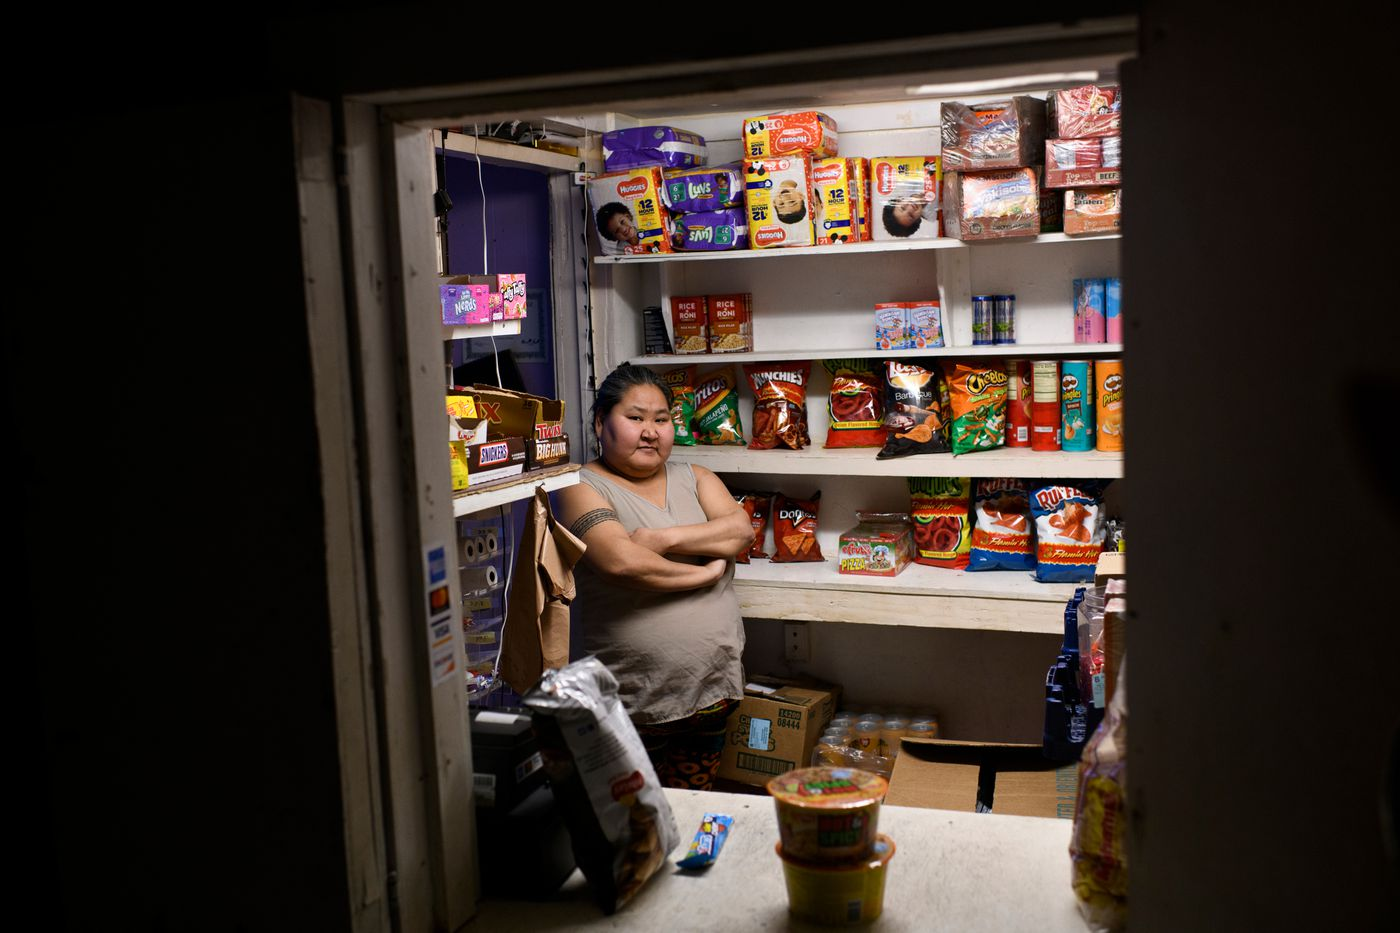 Patricia Coffin runs Mau's Shop, a small store in Noorvik, on December 2, 2018. Coffin said insufficient housing in Noorvik would be a priority for her to address if she were governor of Alaska. (Marc Lester / ADN)